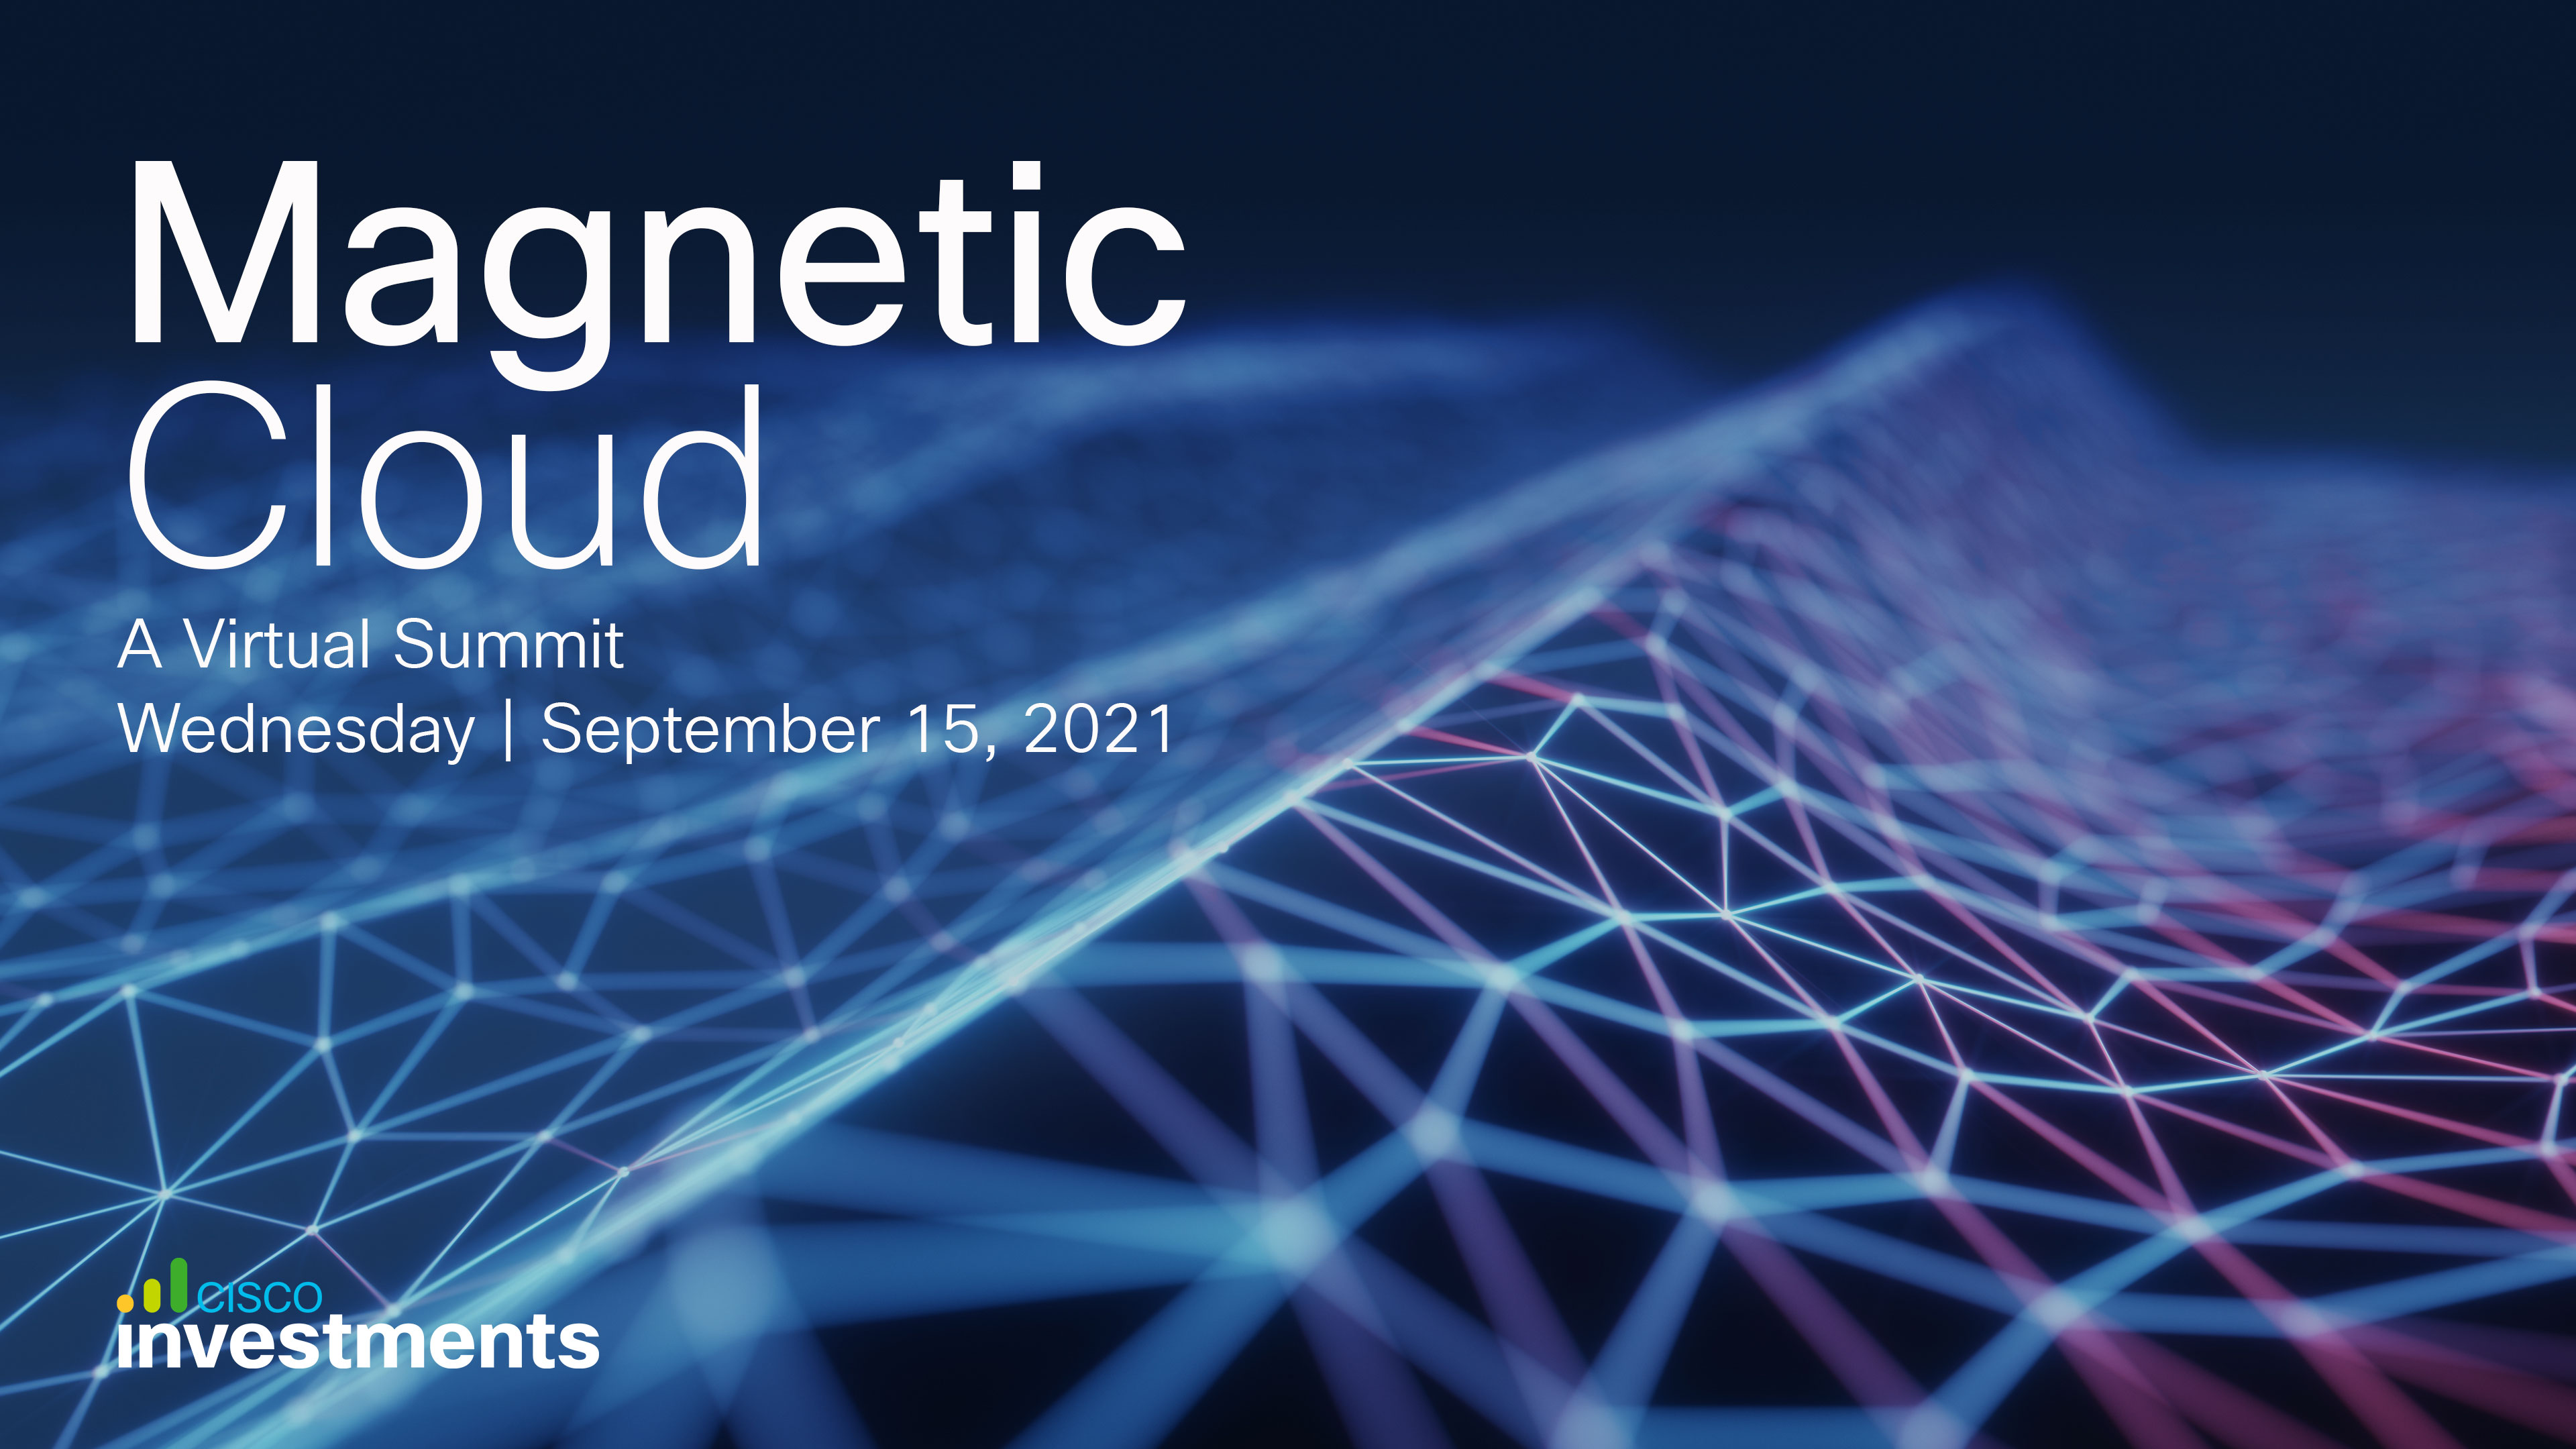 Cisco Investments: Magnetic Cloud